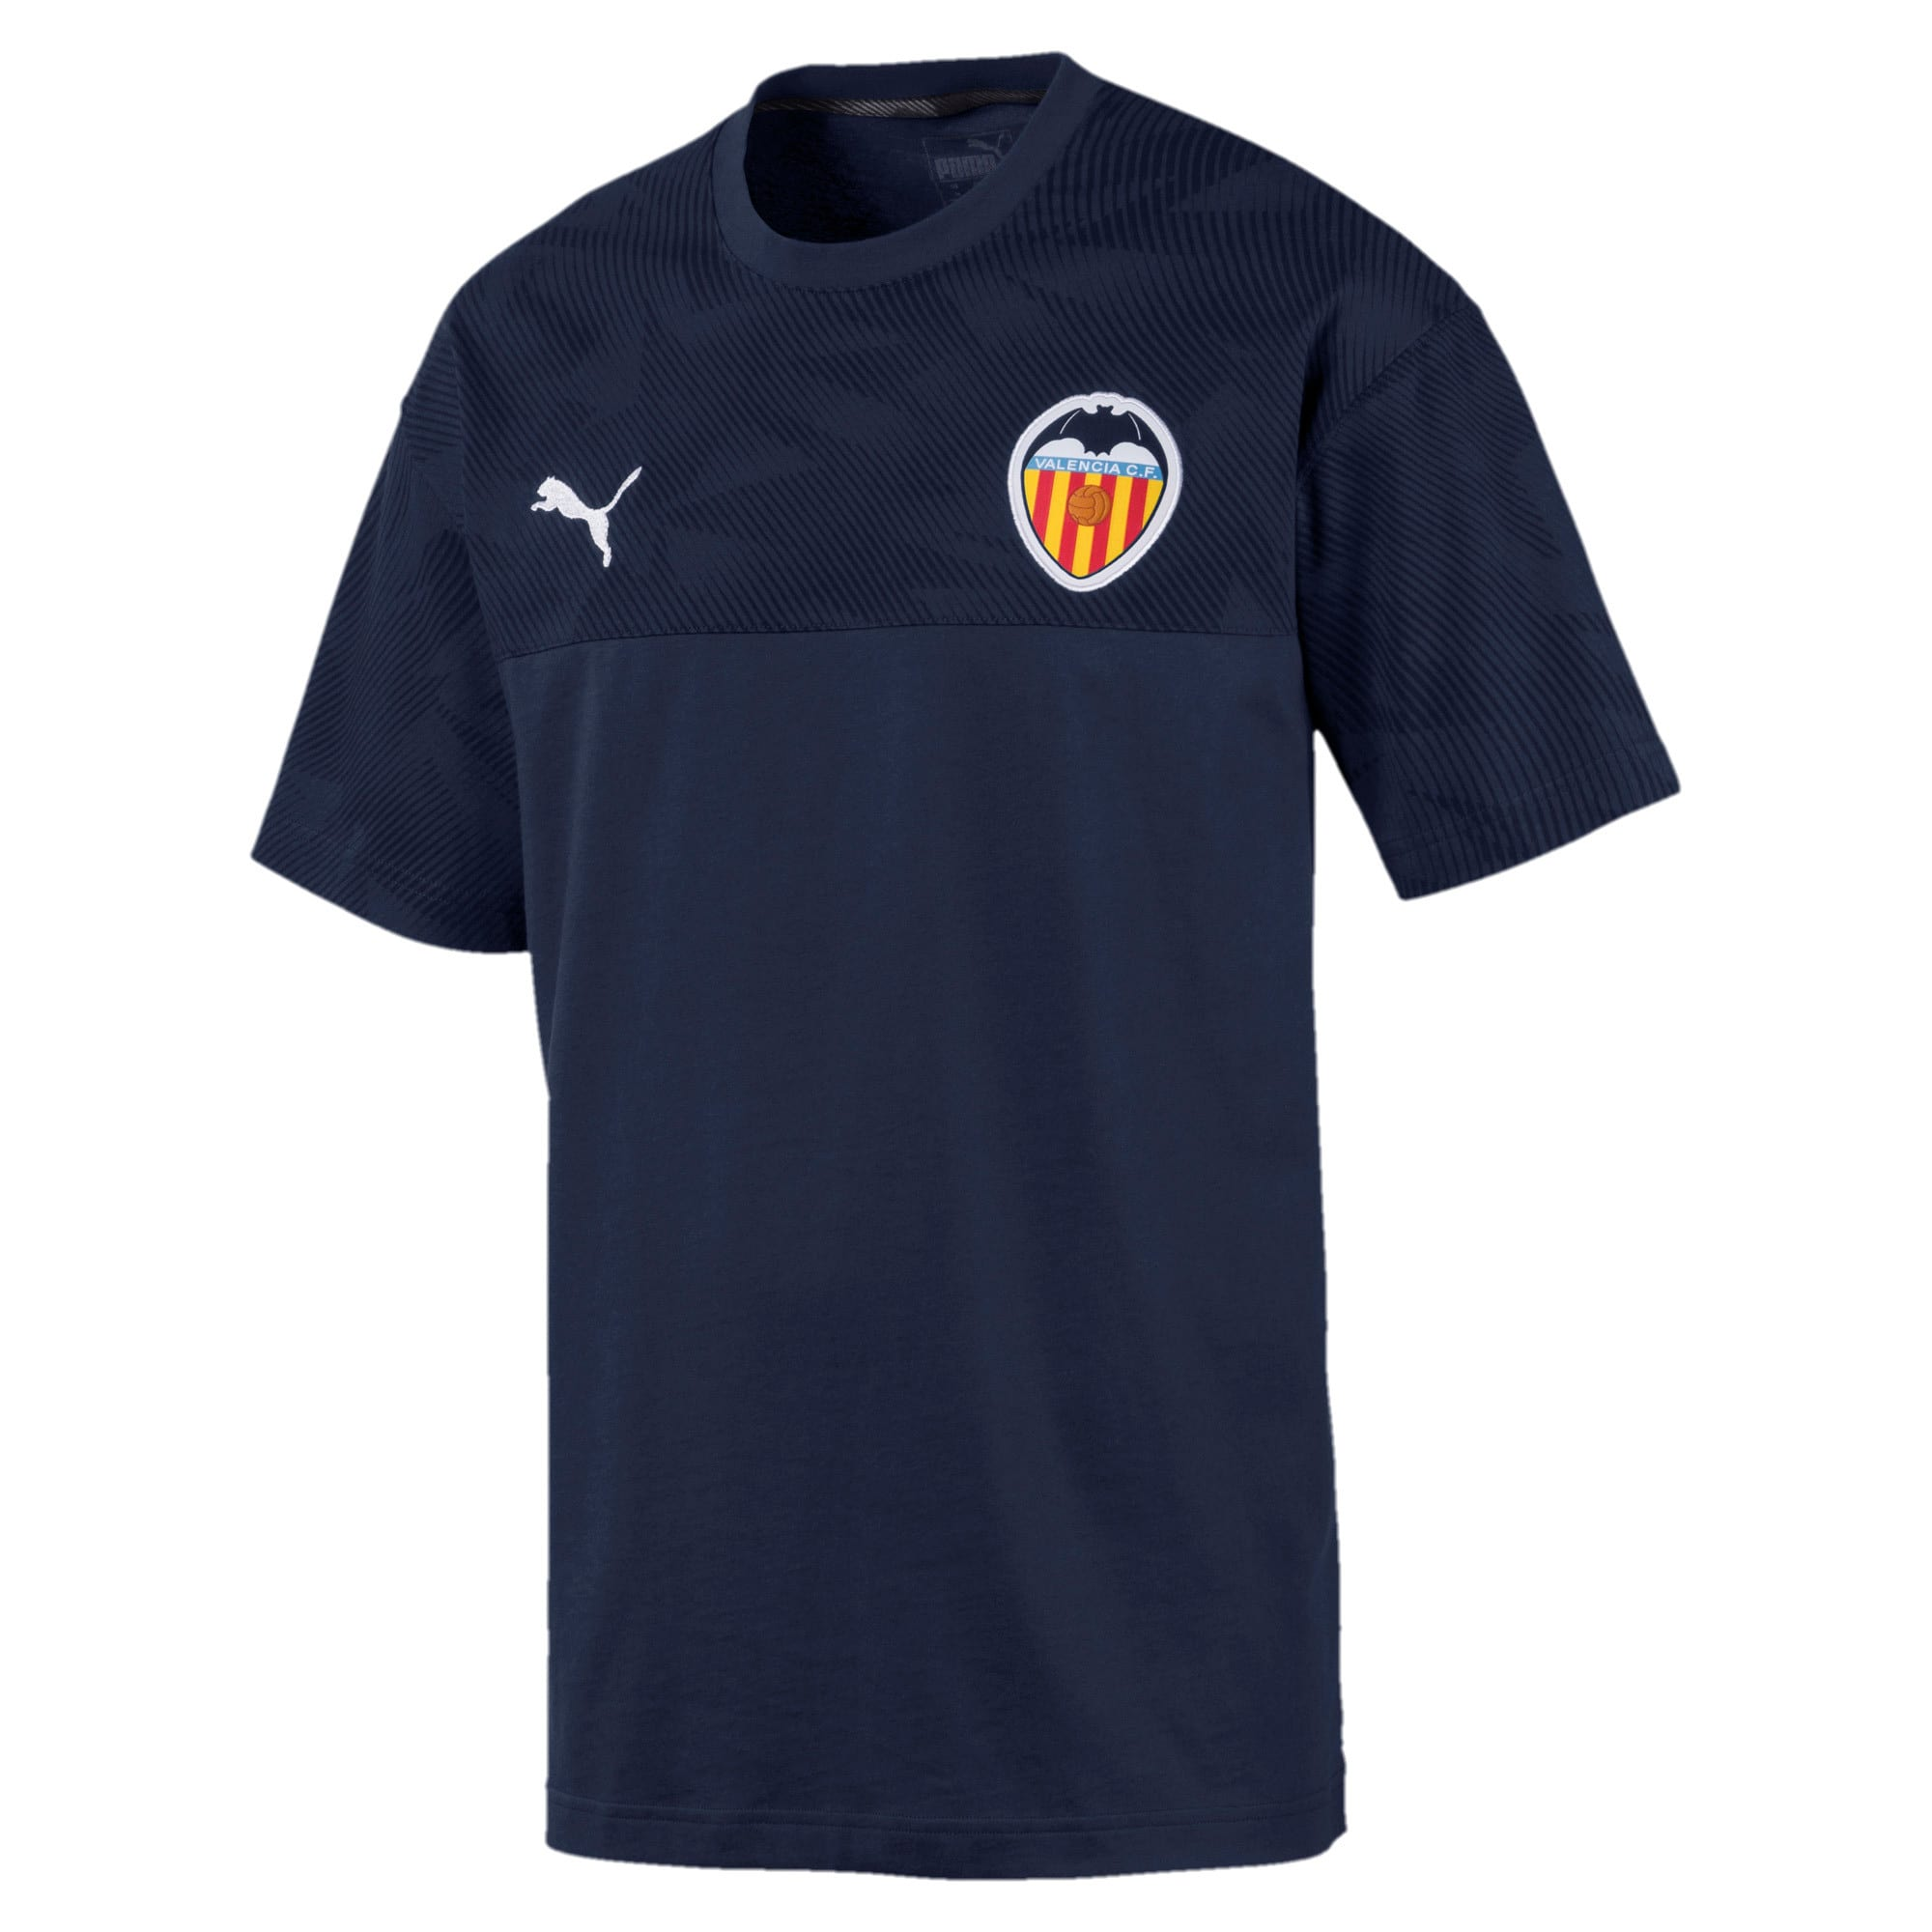 Thumbnail 1 of Valencia CF Casuals Men's Tee, Peacoat, medium